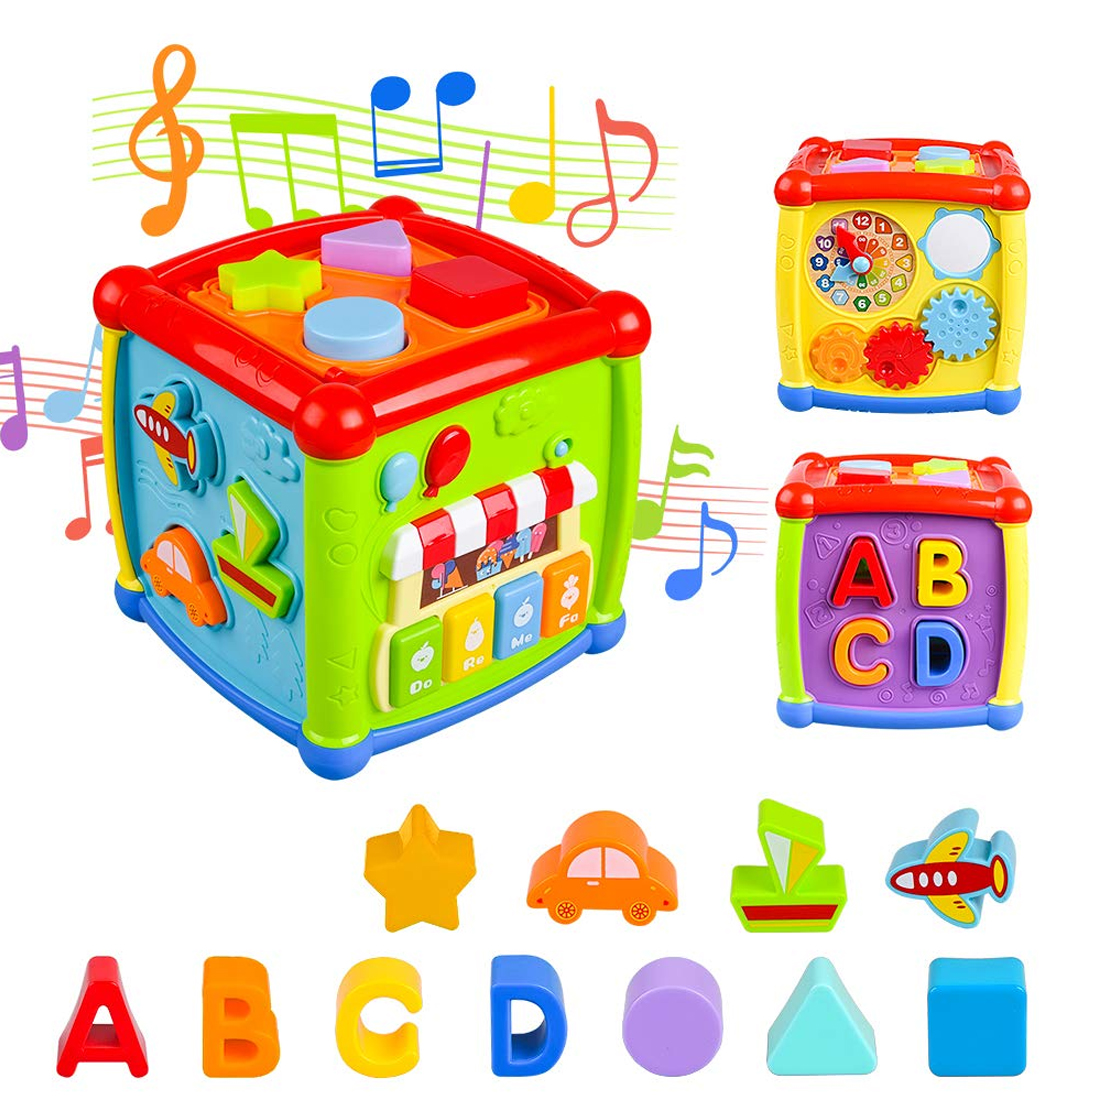 2019 Multifunctional Musical Toys Toddler Baby Box Music Activity Cube Gear Clock Geometric Blocks Sorting Educational Toys